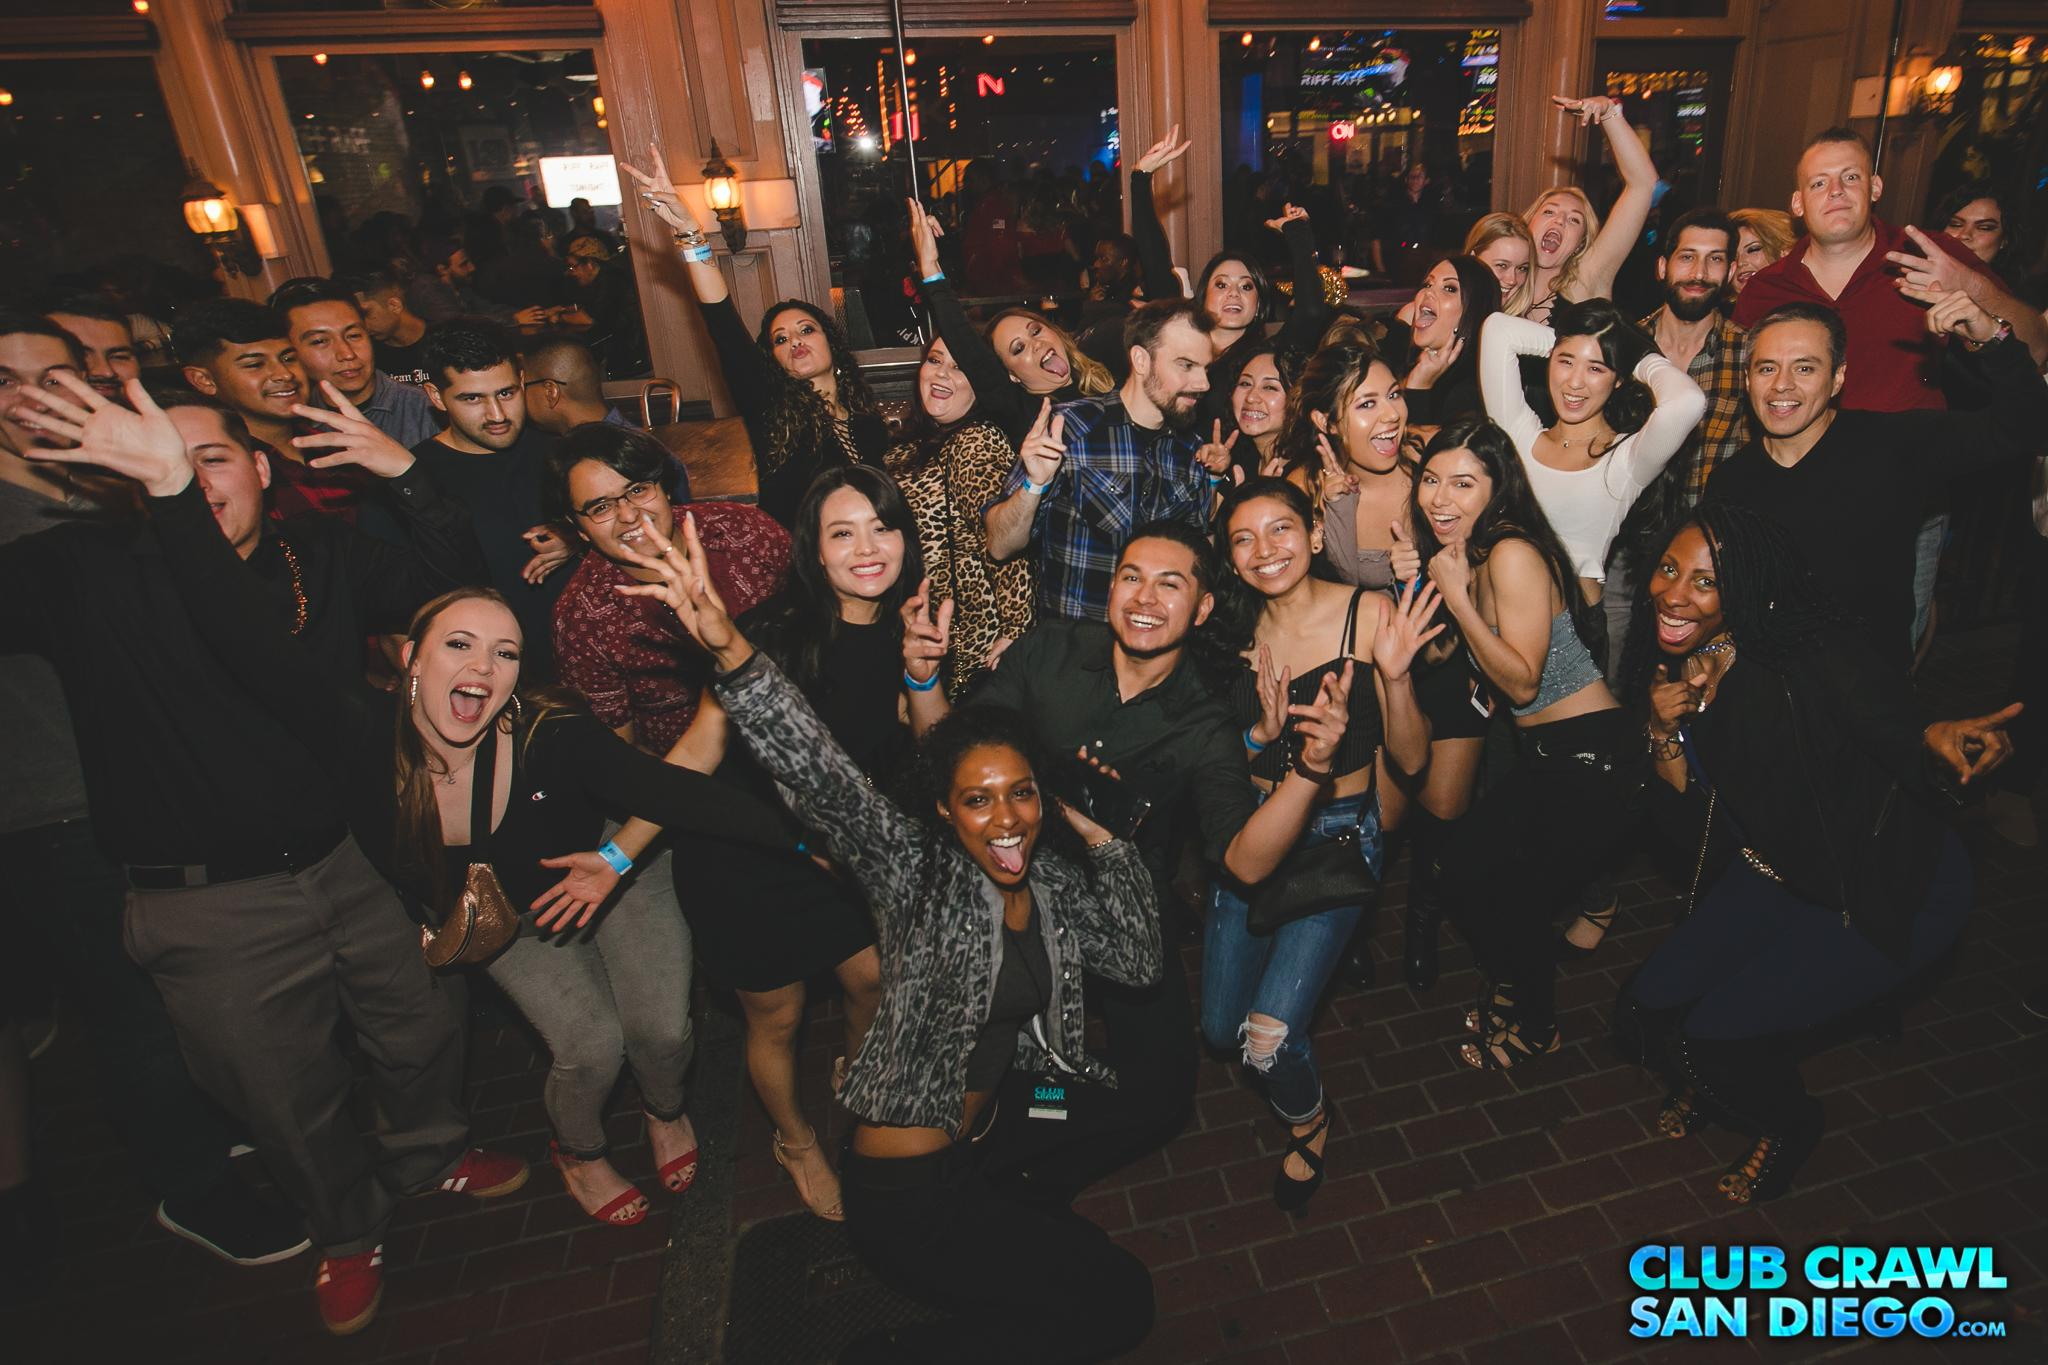 San Diego Club Crawl - Guided Bar and Nightclub Crawl